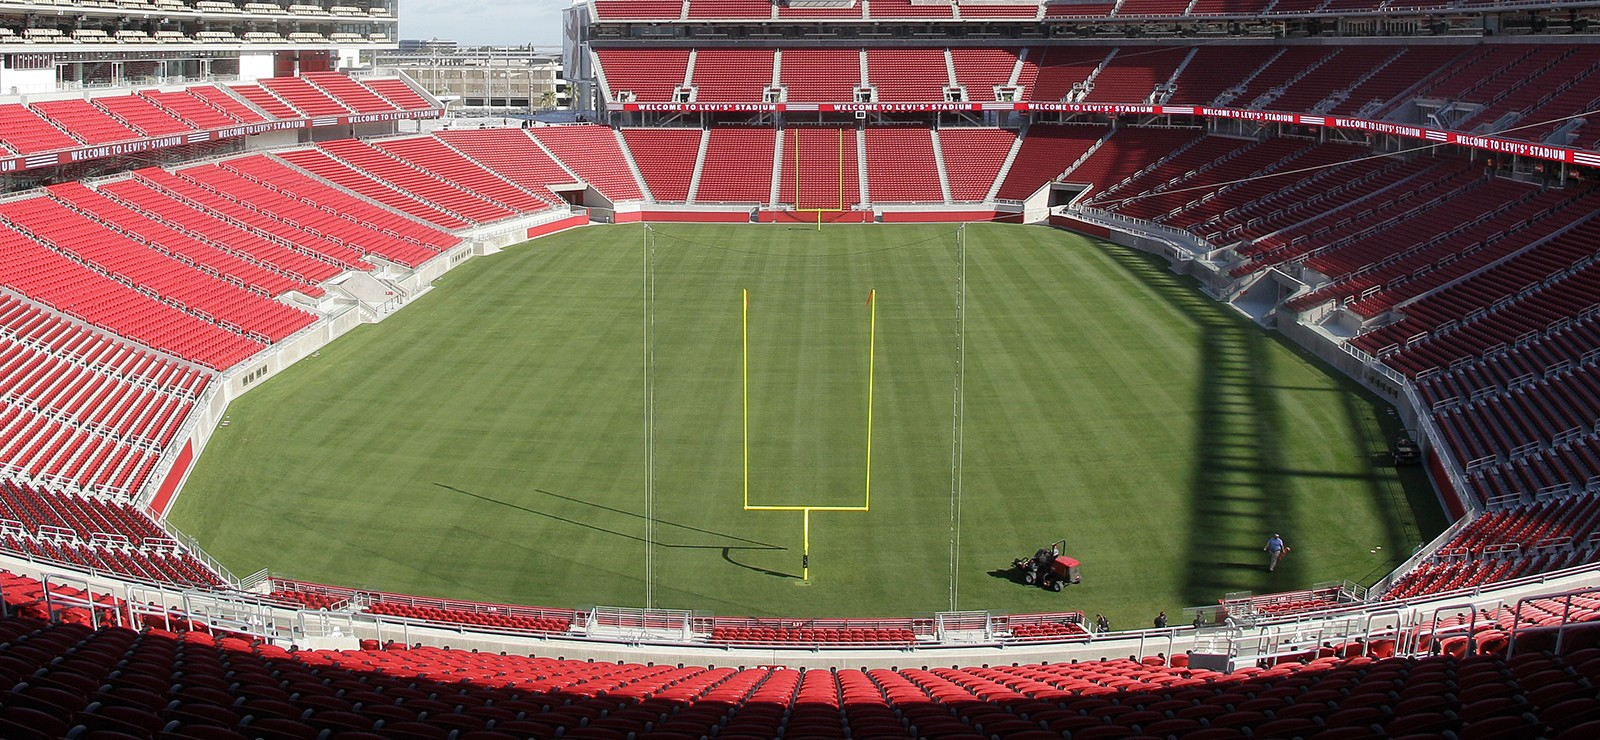 49ers Standing Room Tickets To Go On Sale On August 5